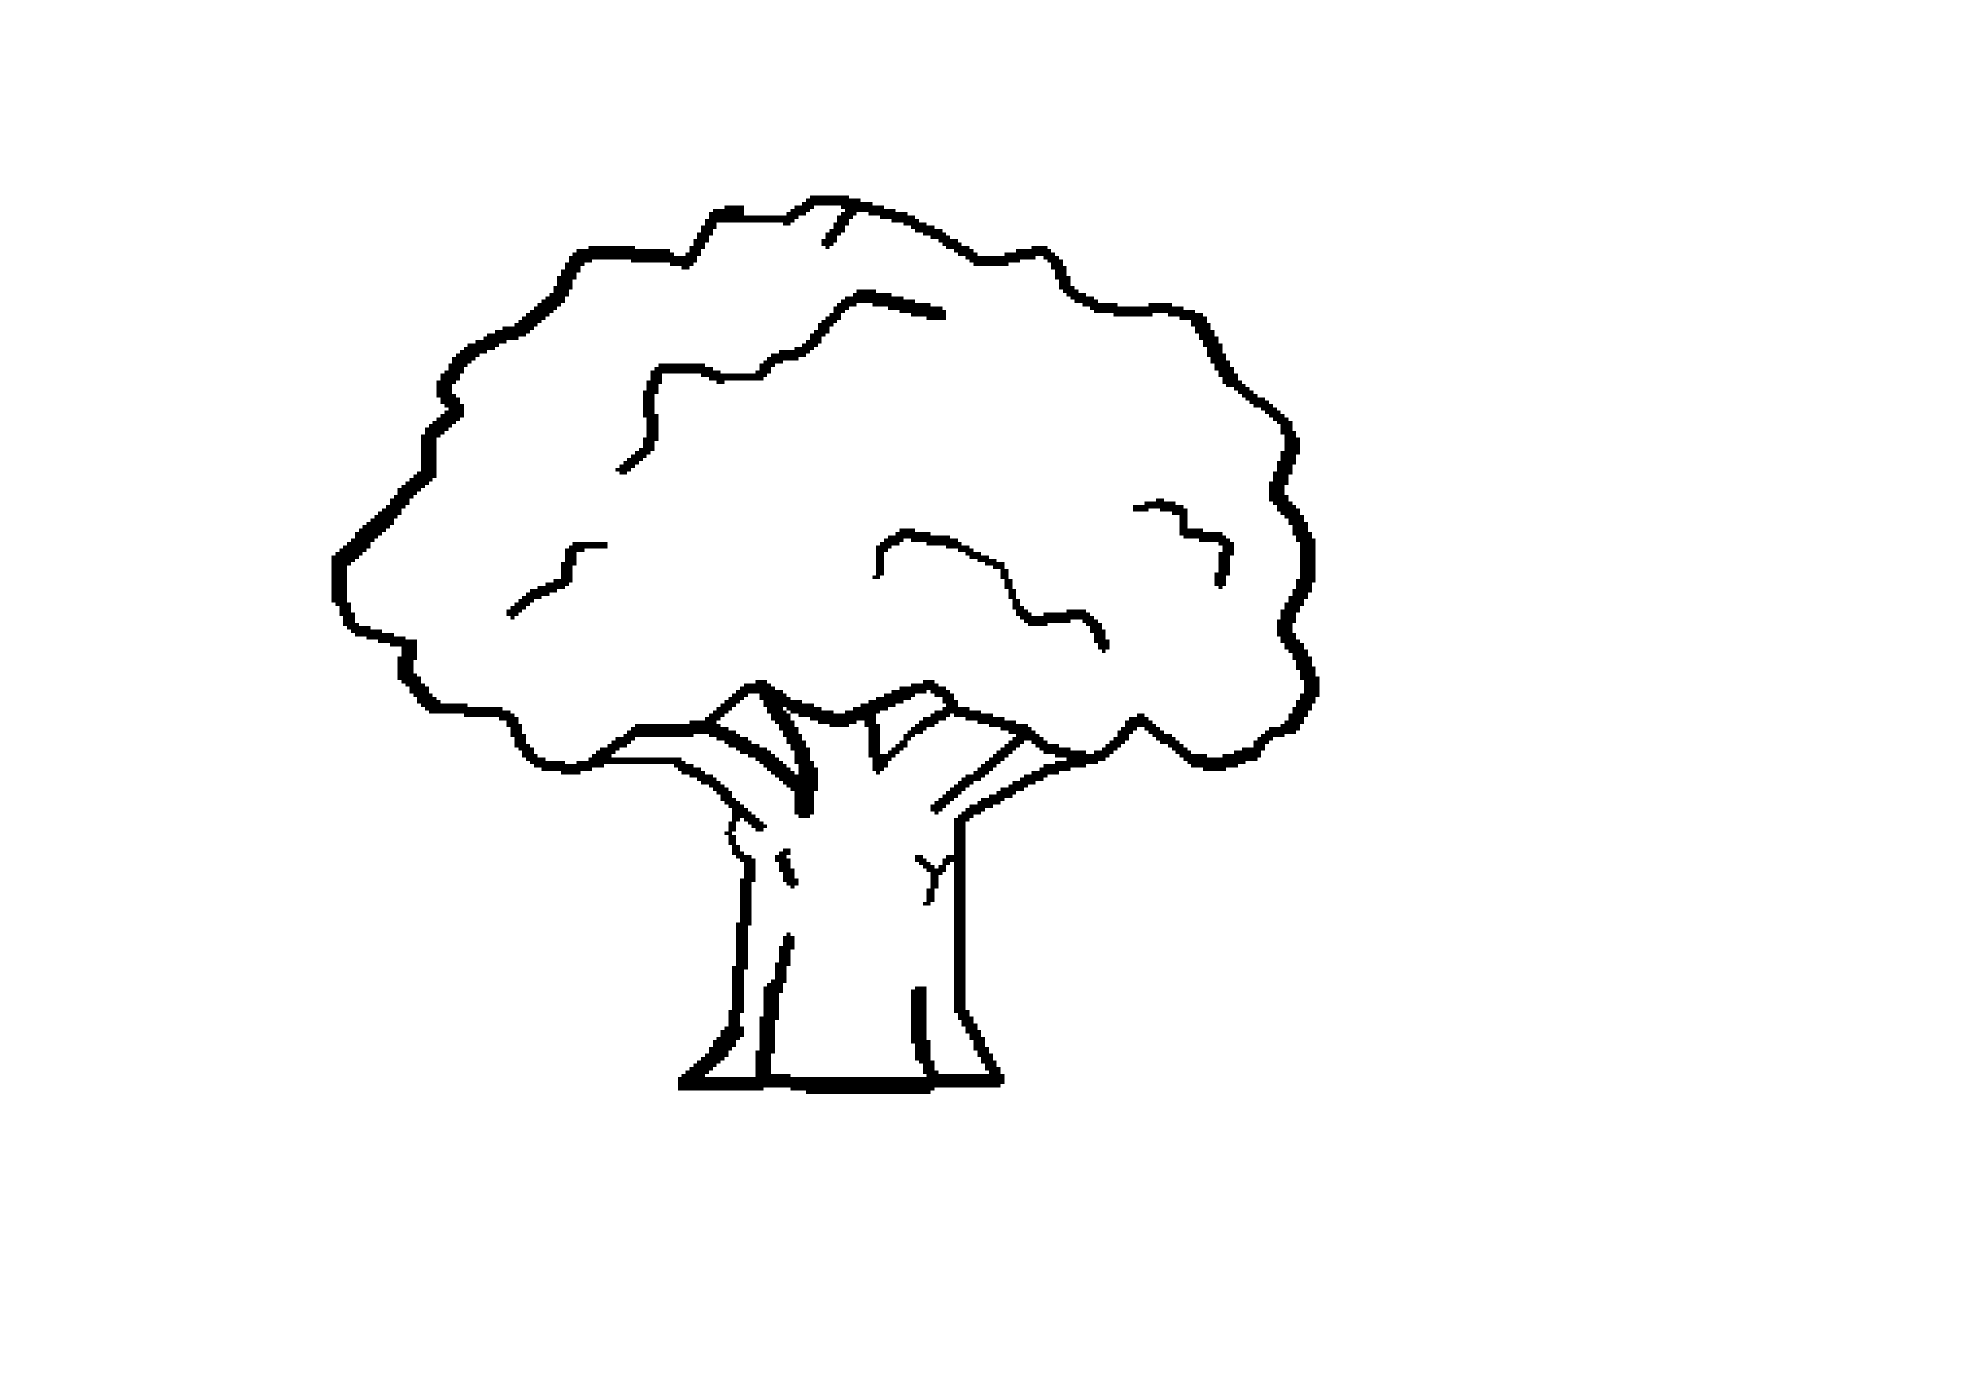 Free drawing download clip. Tree clipart black and white